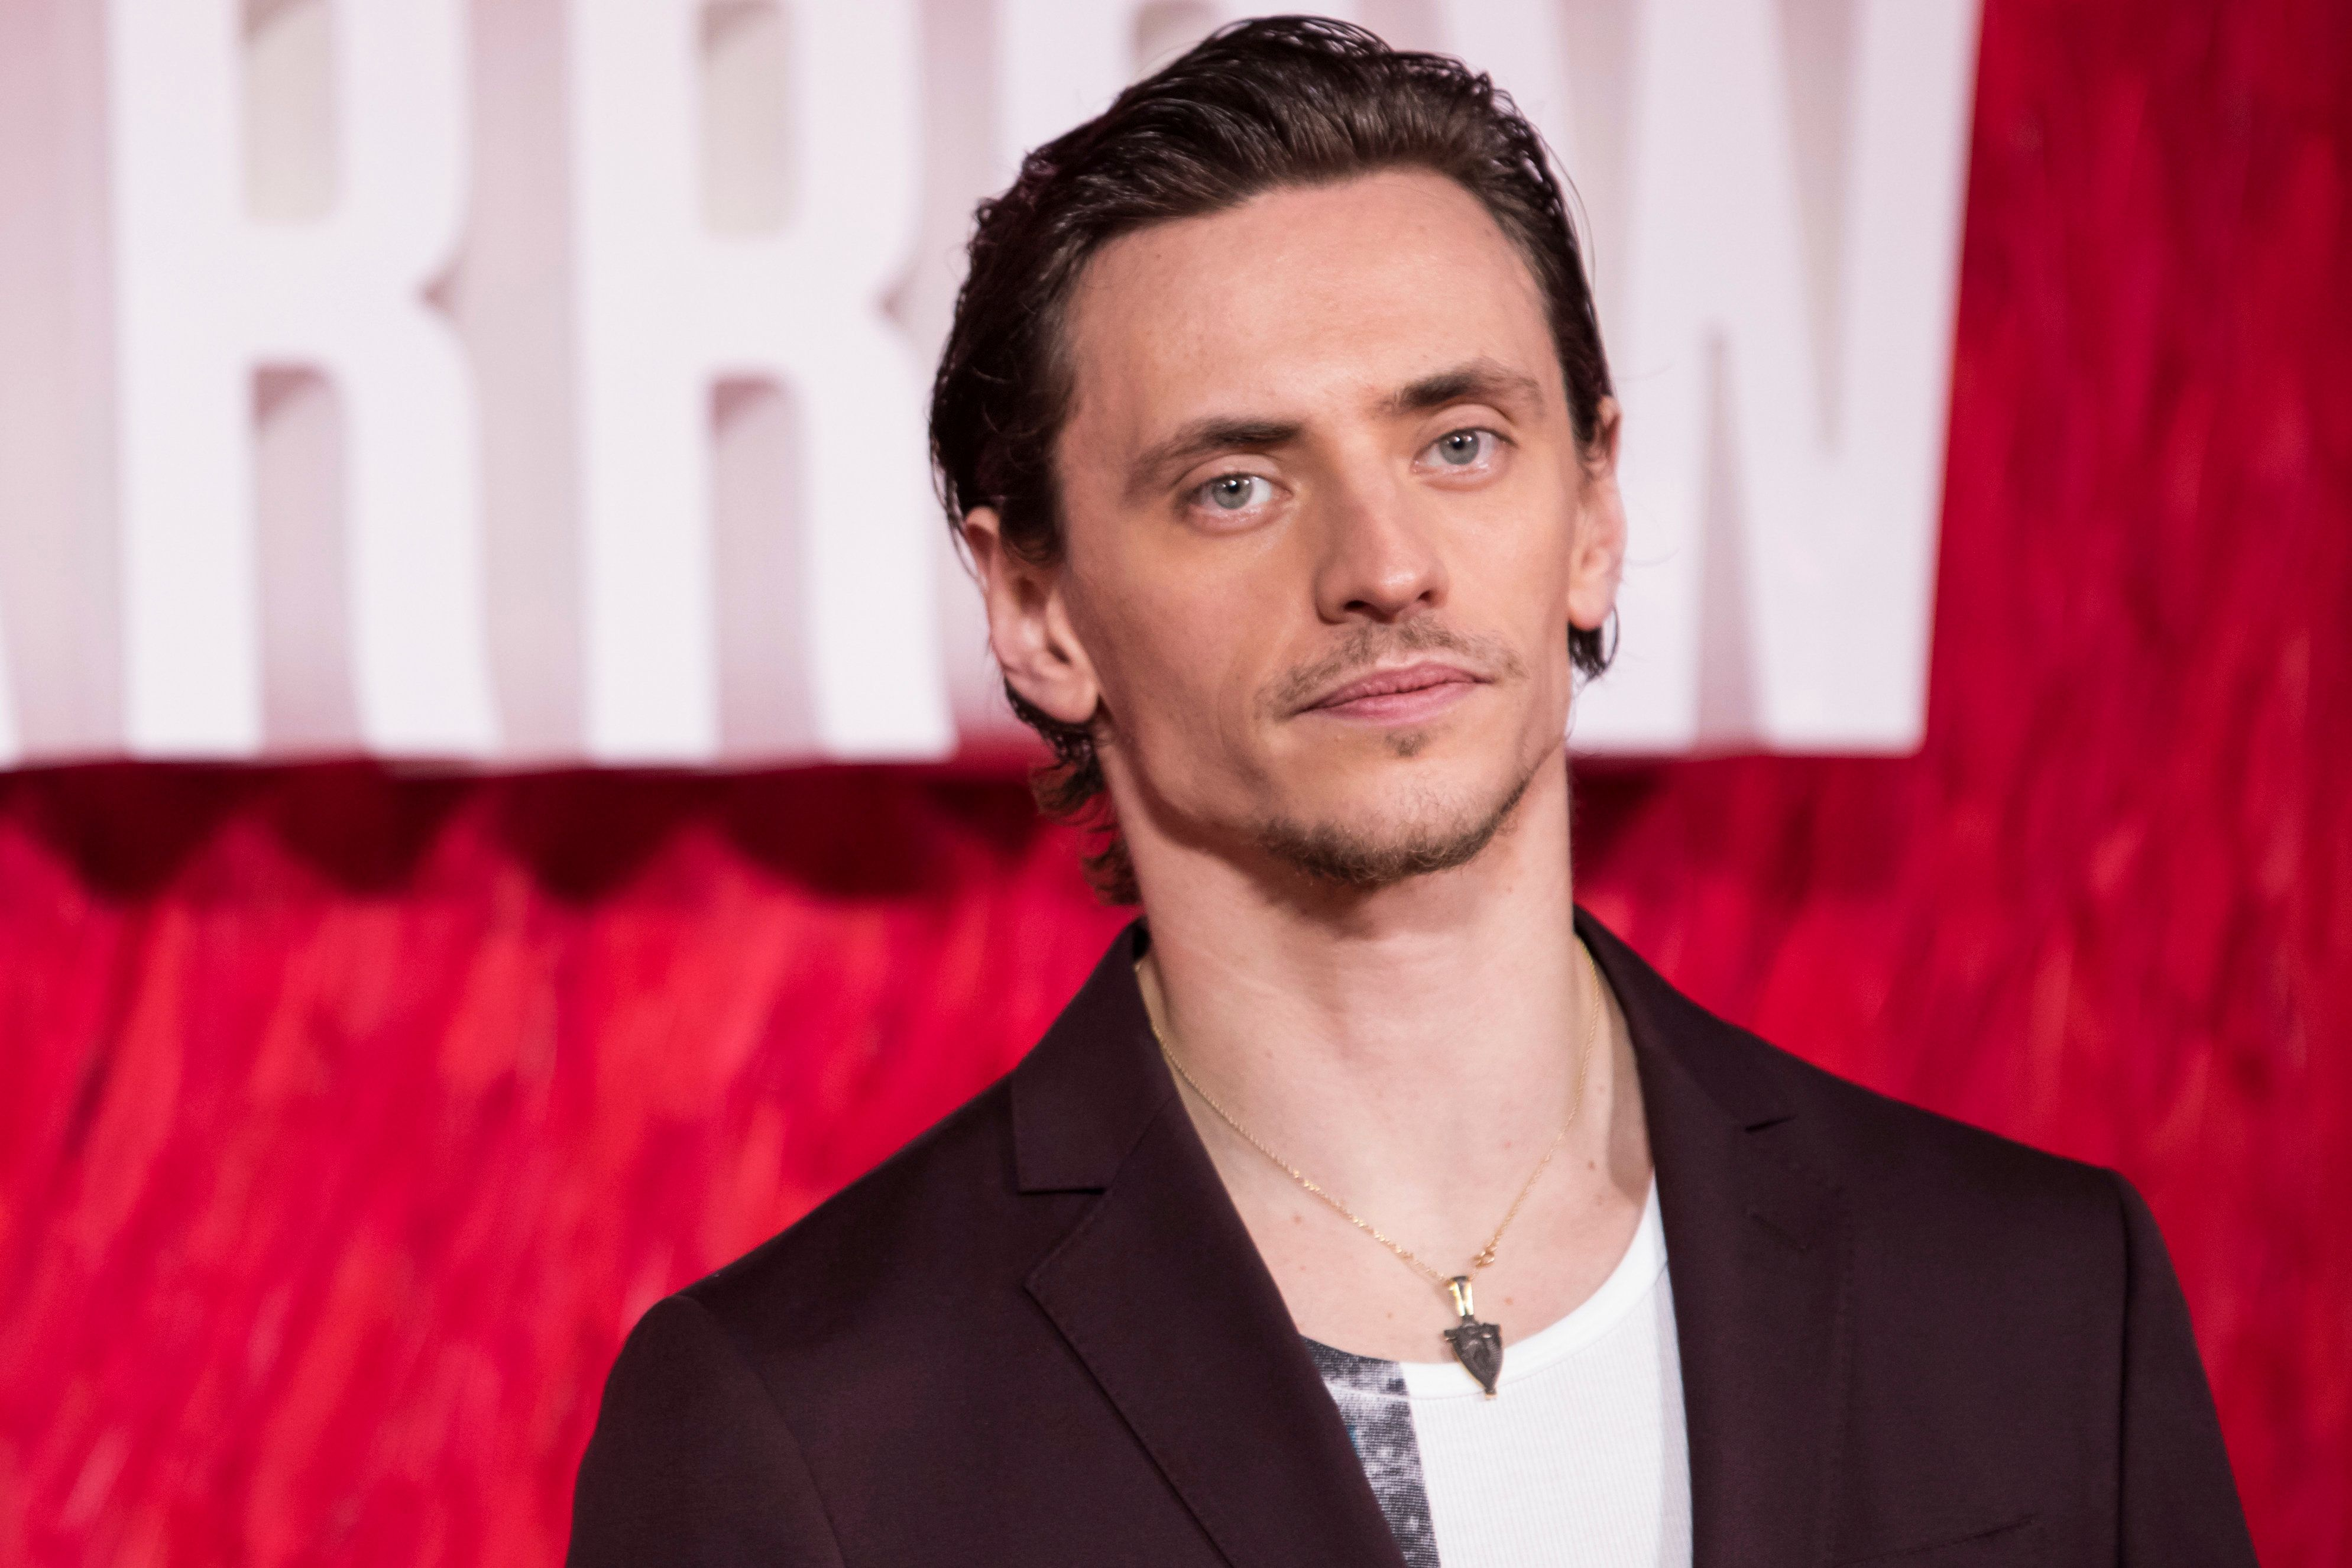 Sergei Polunin began branching out of the classical dance world in 2015 when he starred in a video of...